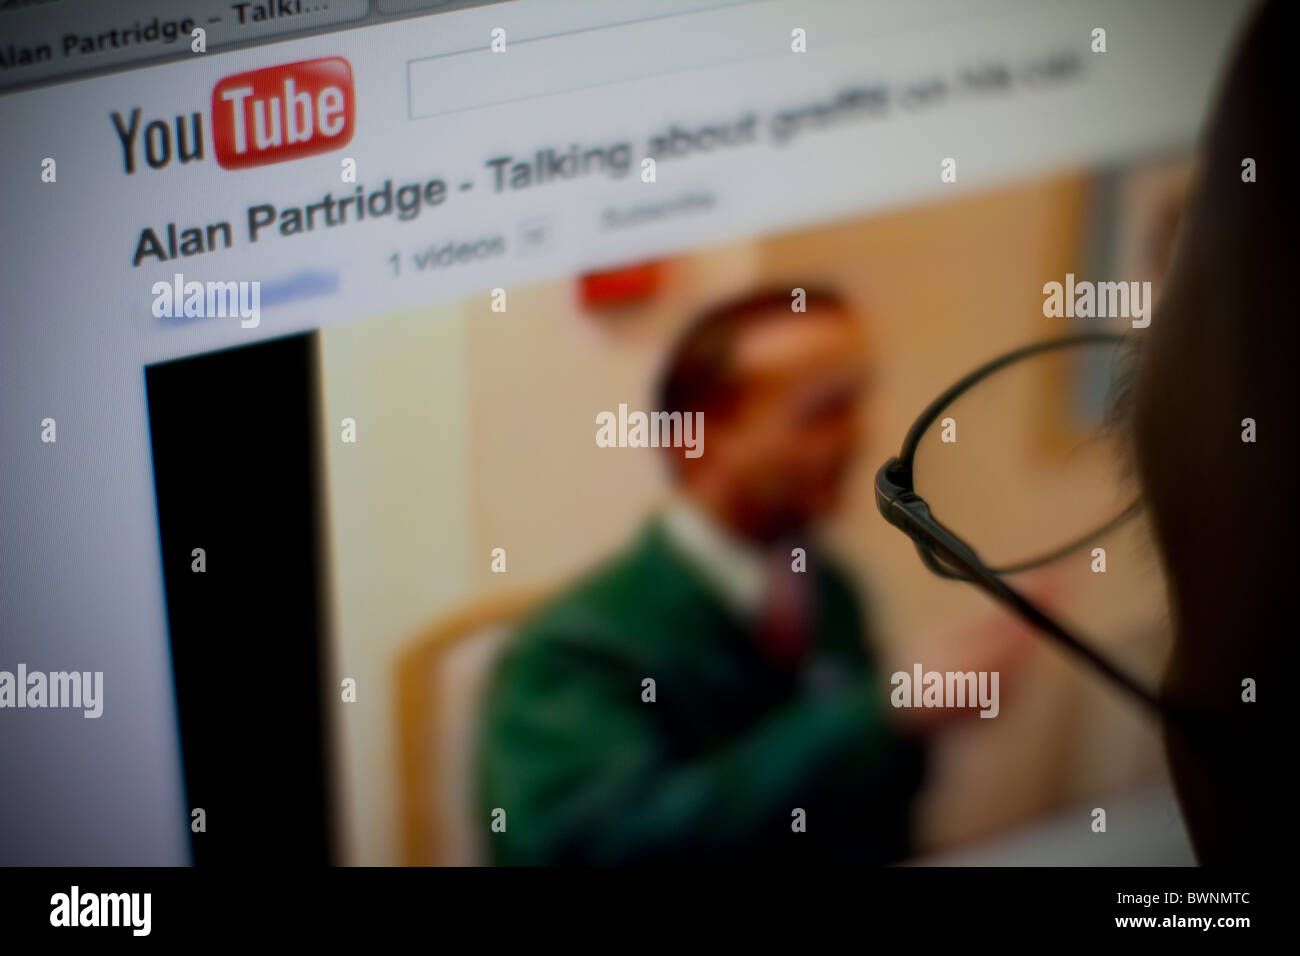 internet browser viewing youtube you tube website - Stock Image